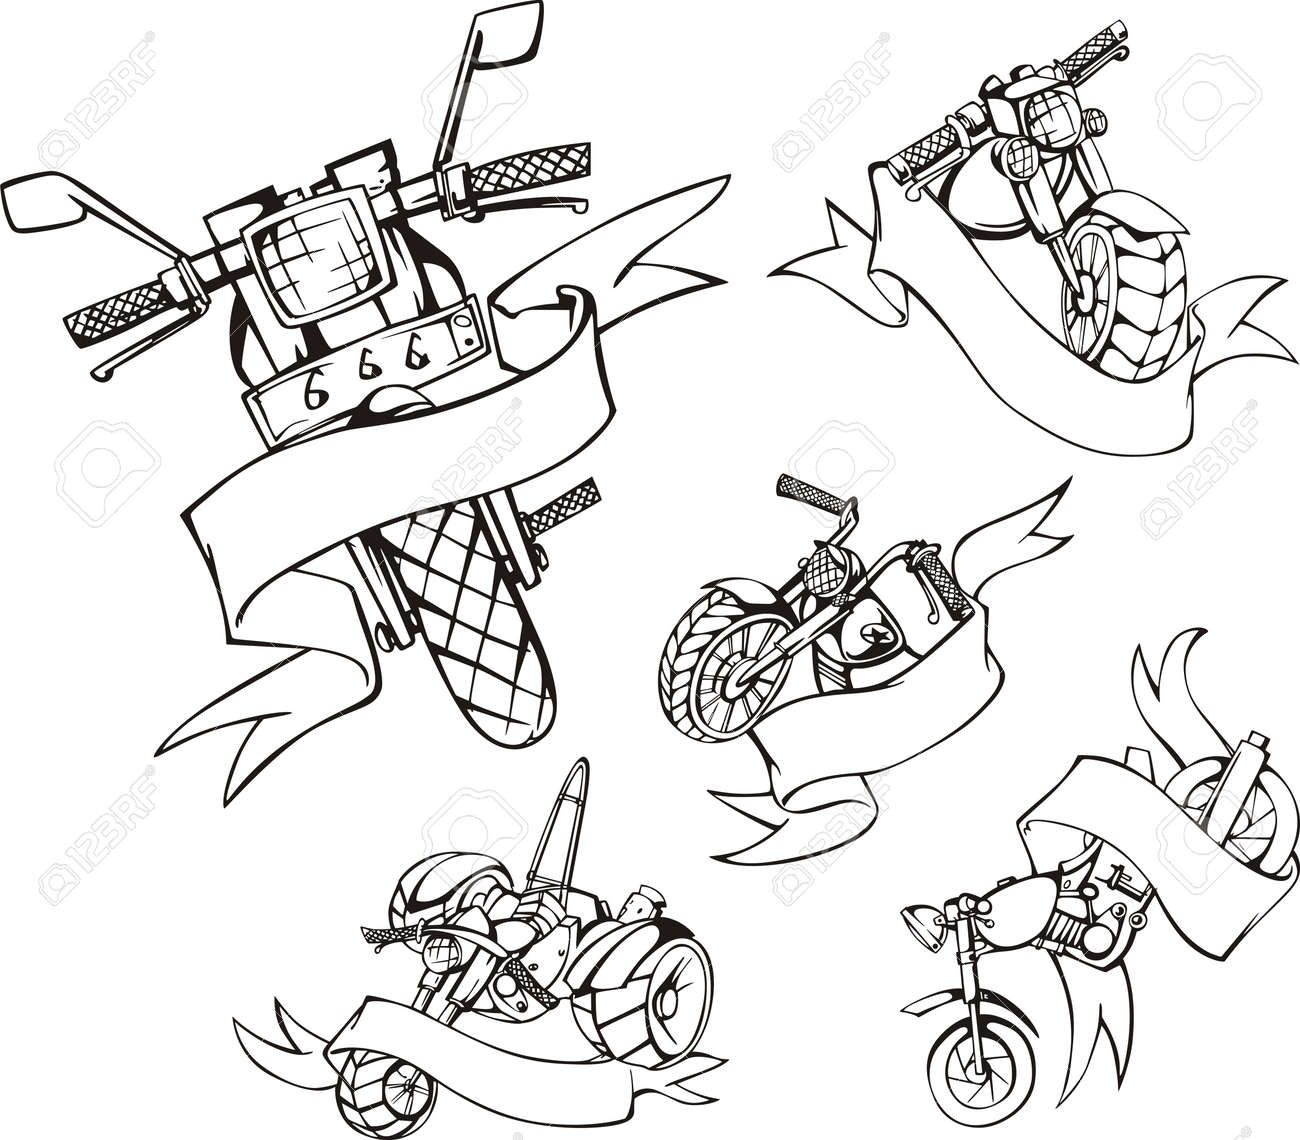 Motorcycle templates with ribbons. Set of black and white vector illustrations. Stock Vector - 16799454